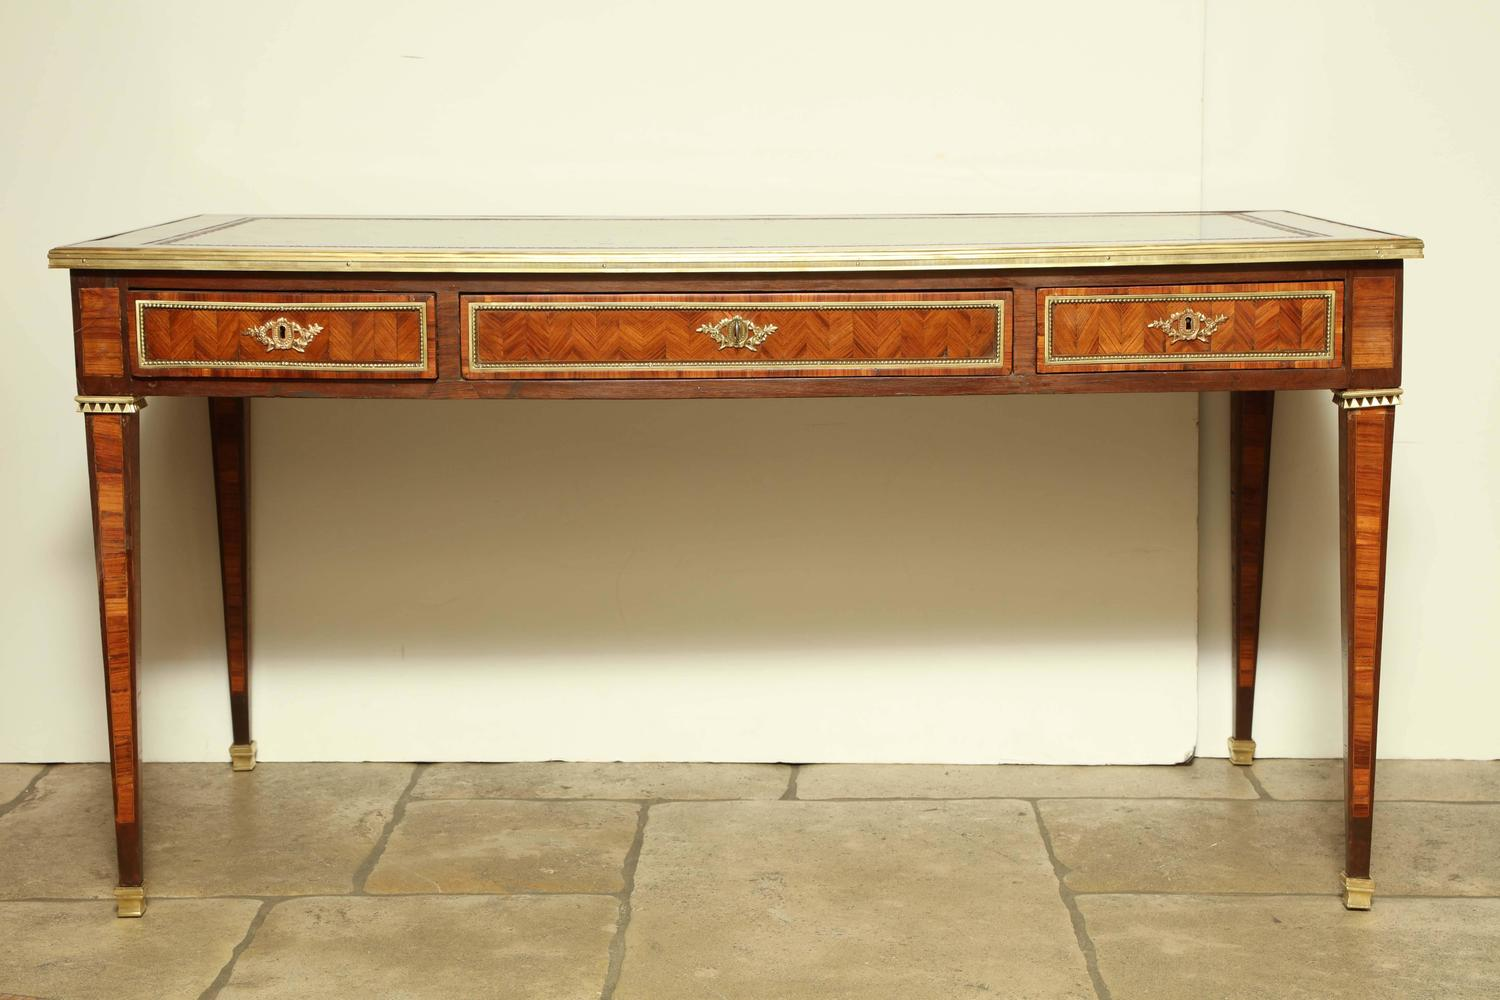 fine louis xvi bureau plat for sale at 1stdibs. Black Bedroom Furniture Sets. Home Design Ideas